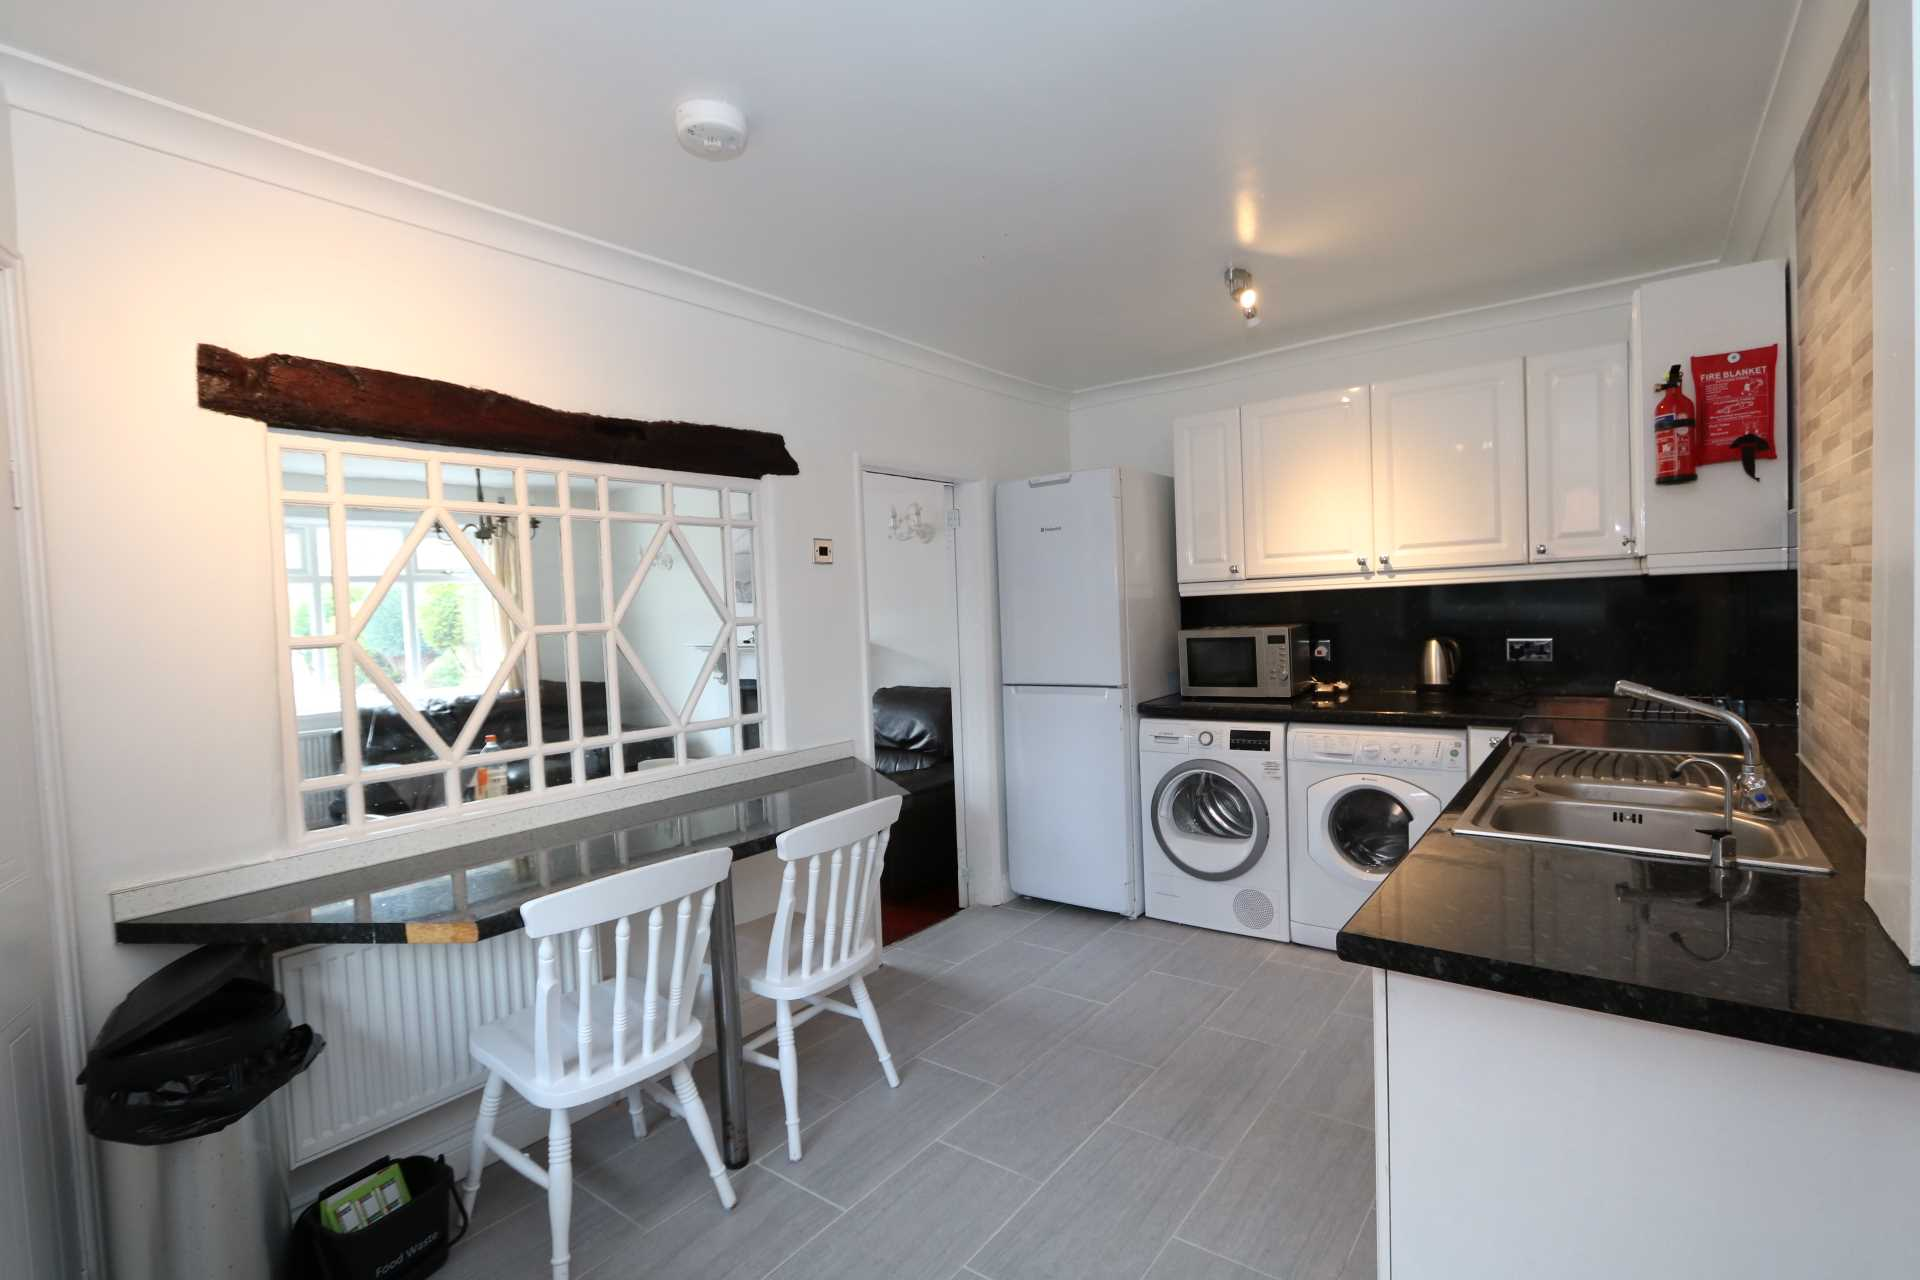 Cornwall Road - 4 bedroom student home fully furnished, WIFI & bills included - NO FEES, Image 4